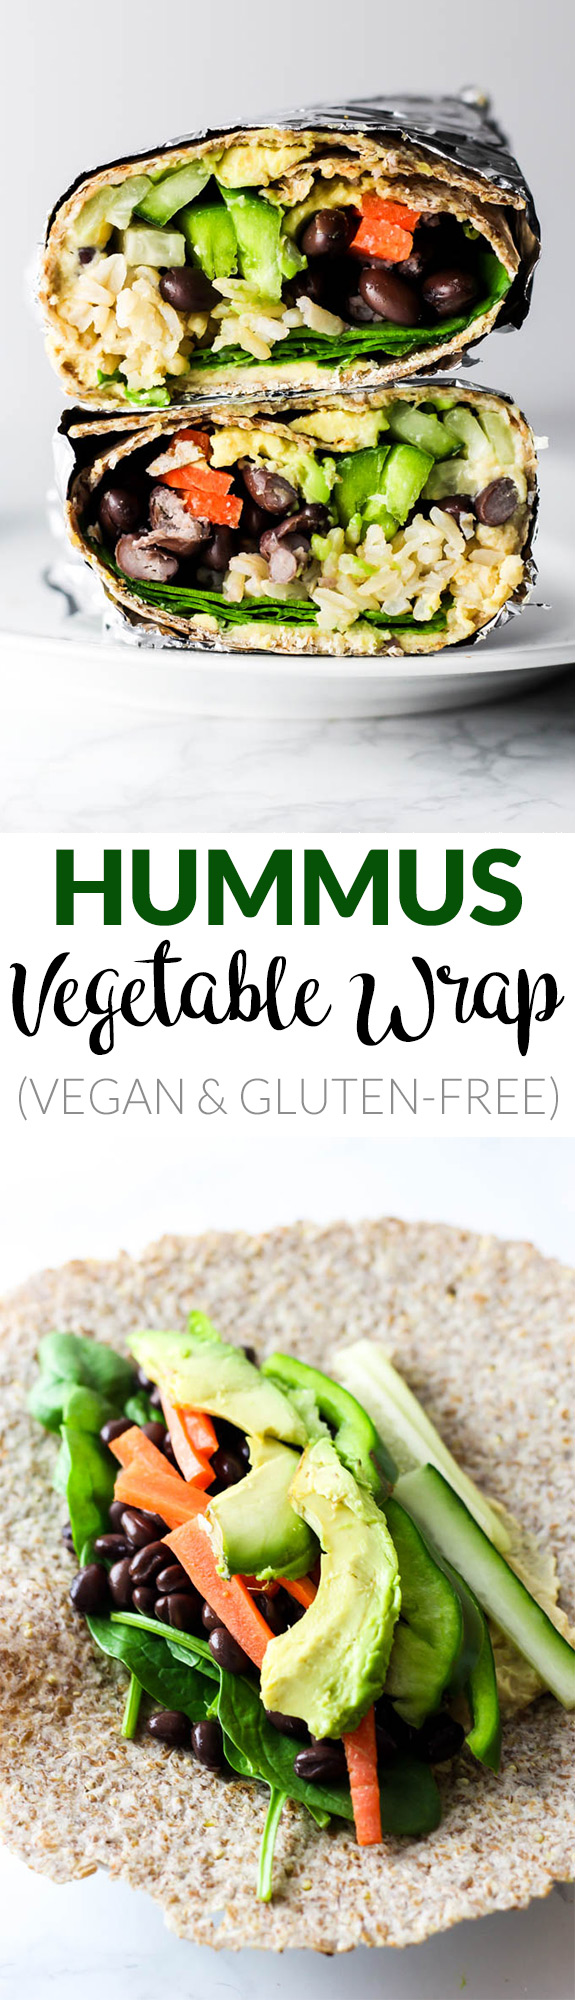 This Hummus Vegetable Wrap is a great on-the-go lunch option! Stuff it with all of your favorite vegetables, beans & creamy hummus. Vegan & gluten-free!